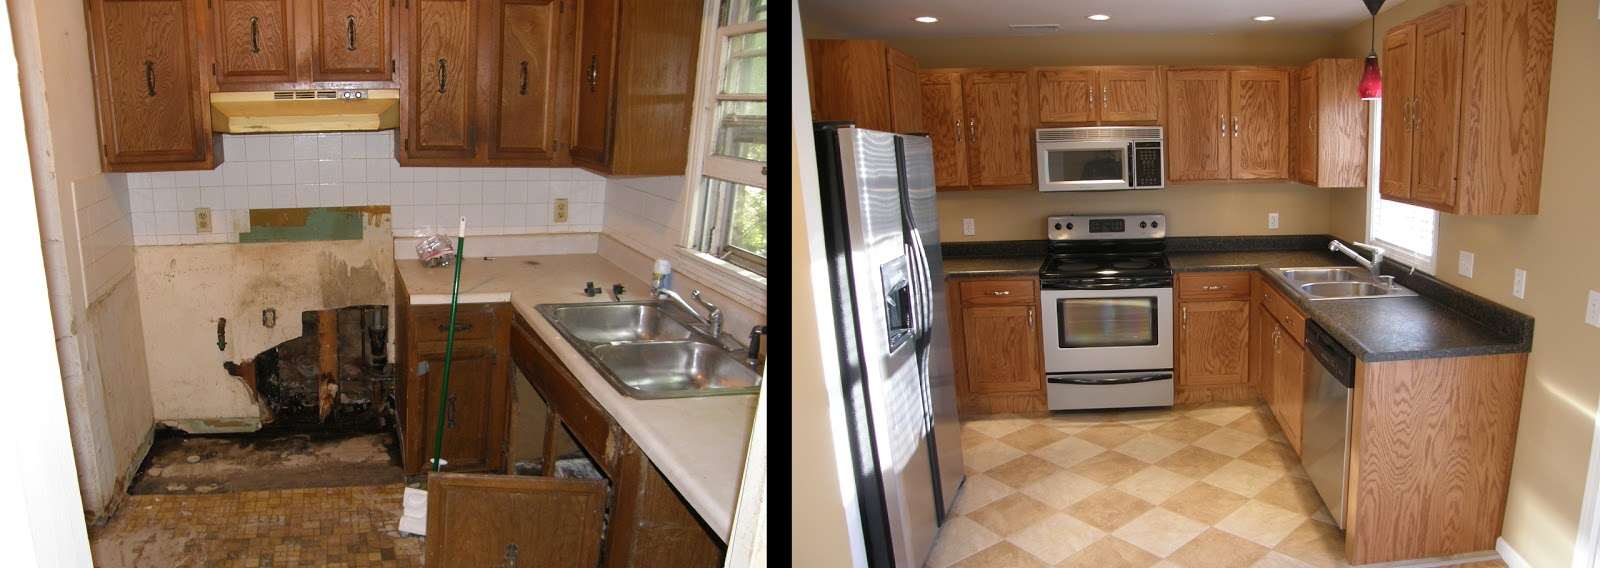 Hendersons Home Improvement LLC Another Kitchen Remodel